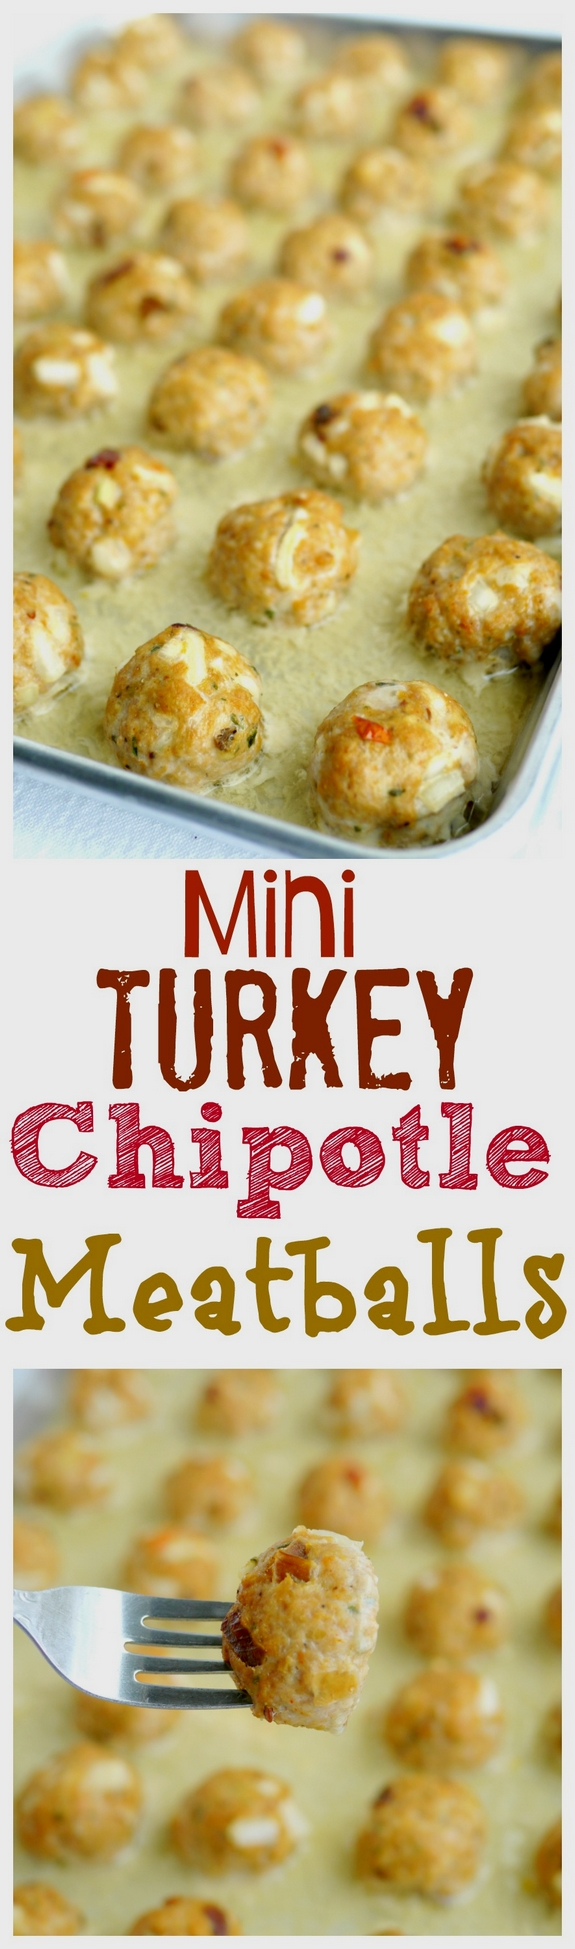 Mini Turkey Chipotle Meatballs